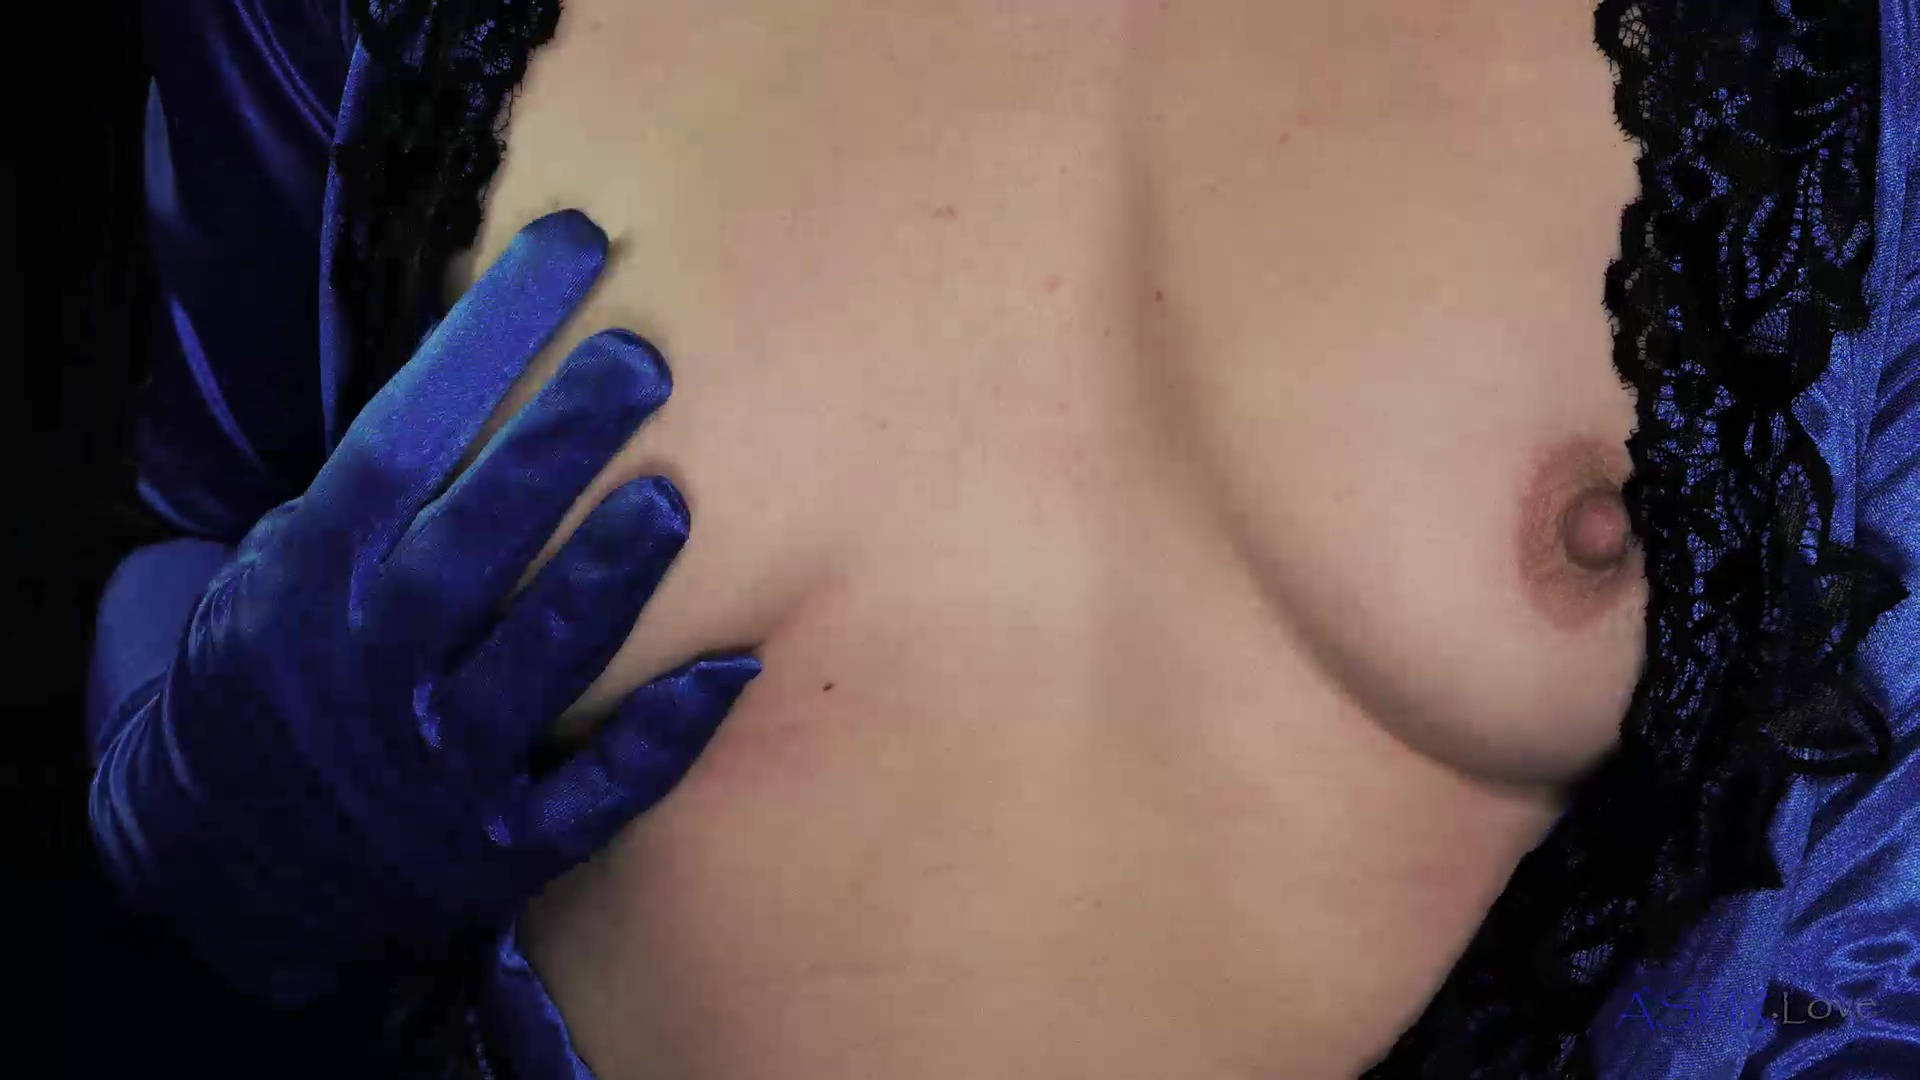 content/Lucy/Wanking in Blue Satin Panties ASMR - Lucy/4.jpg